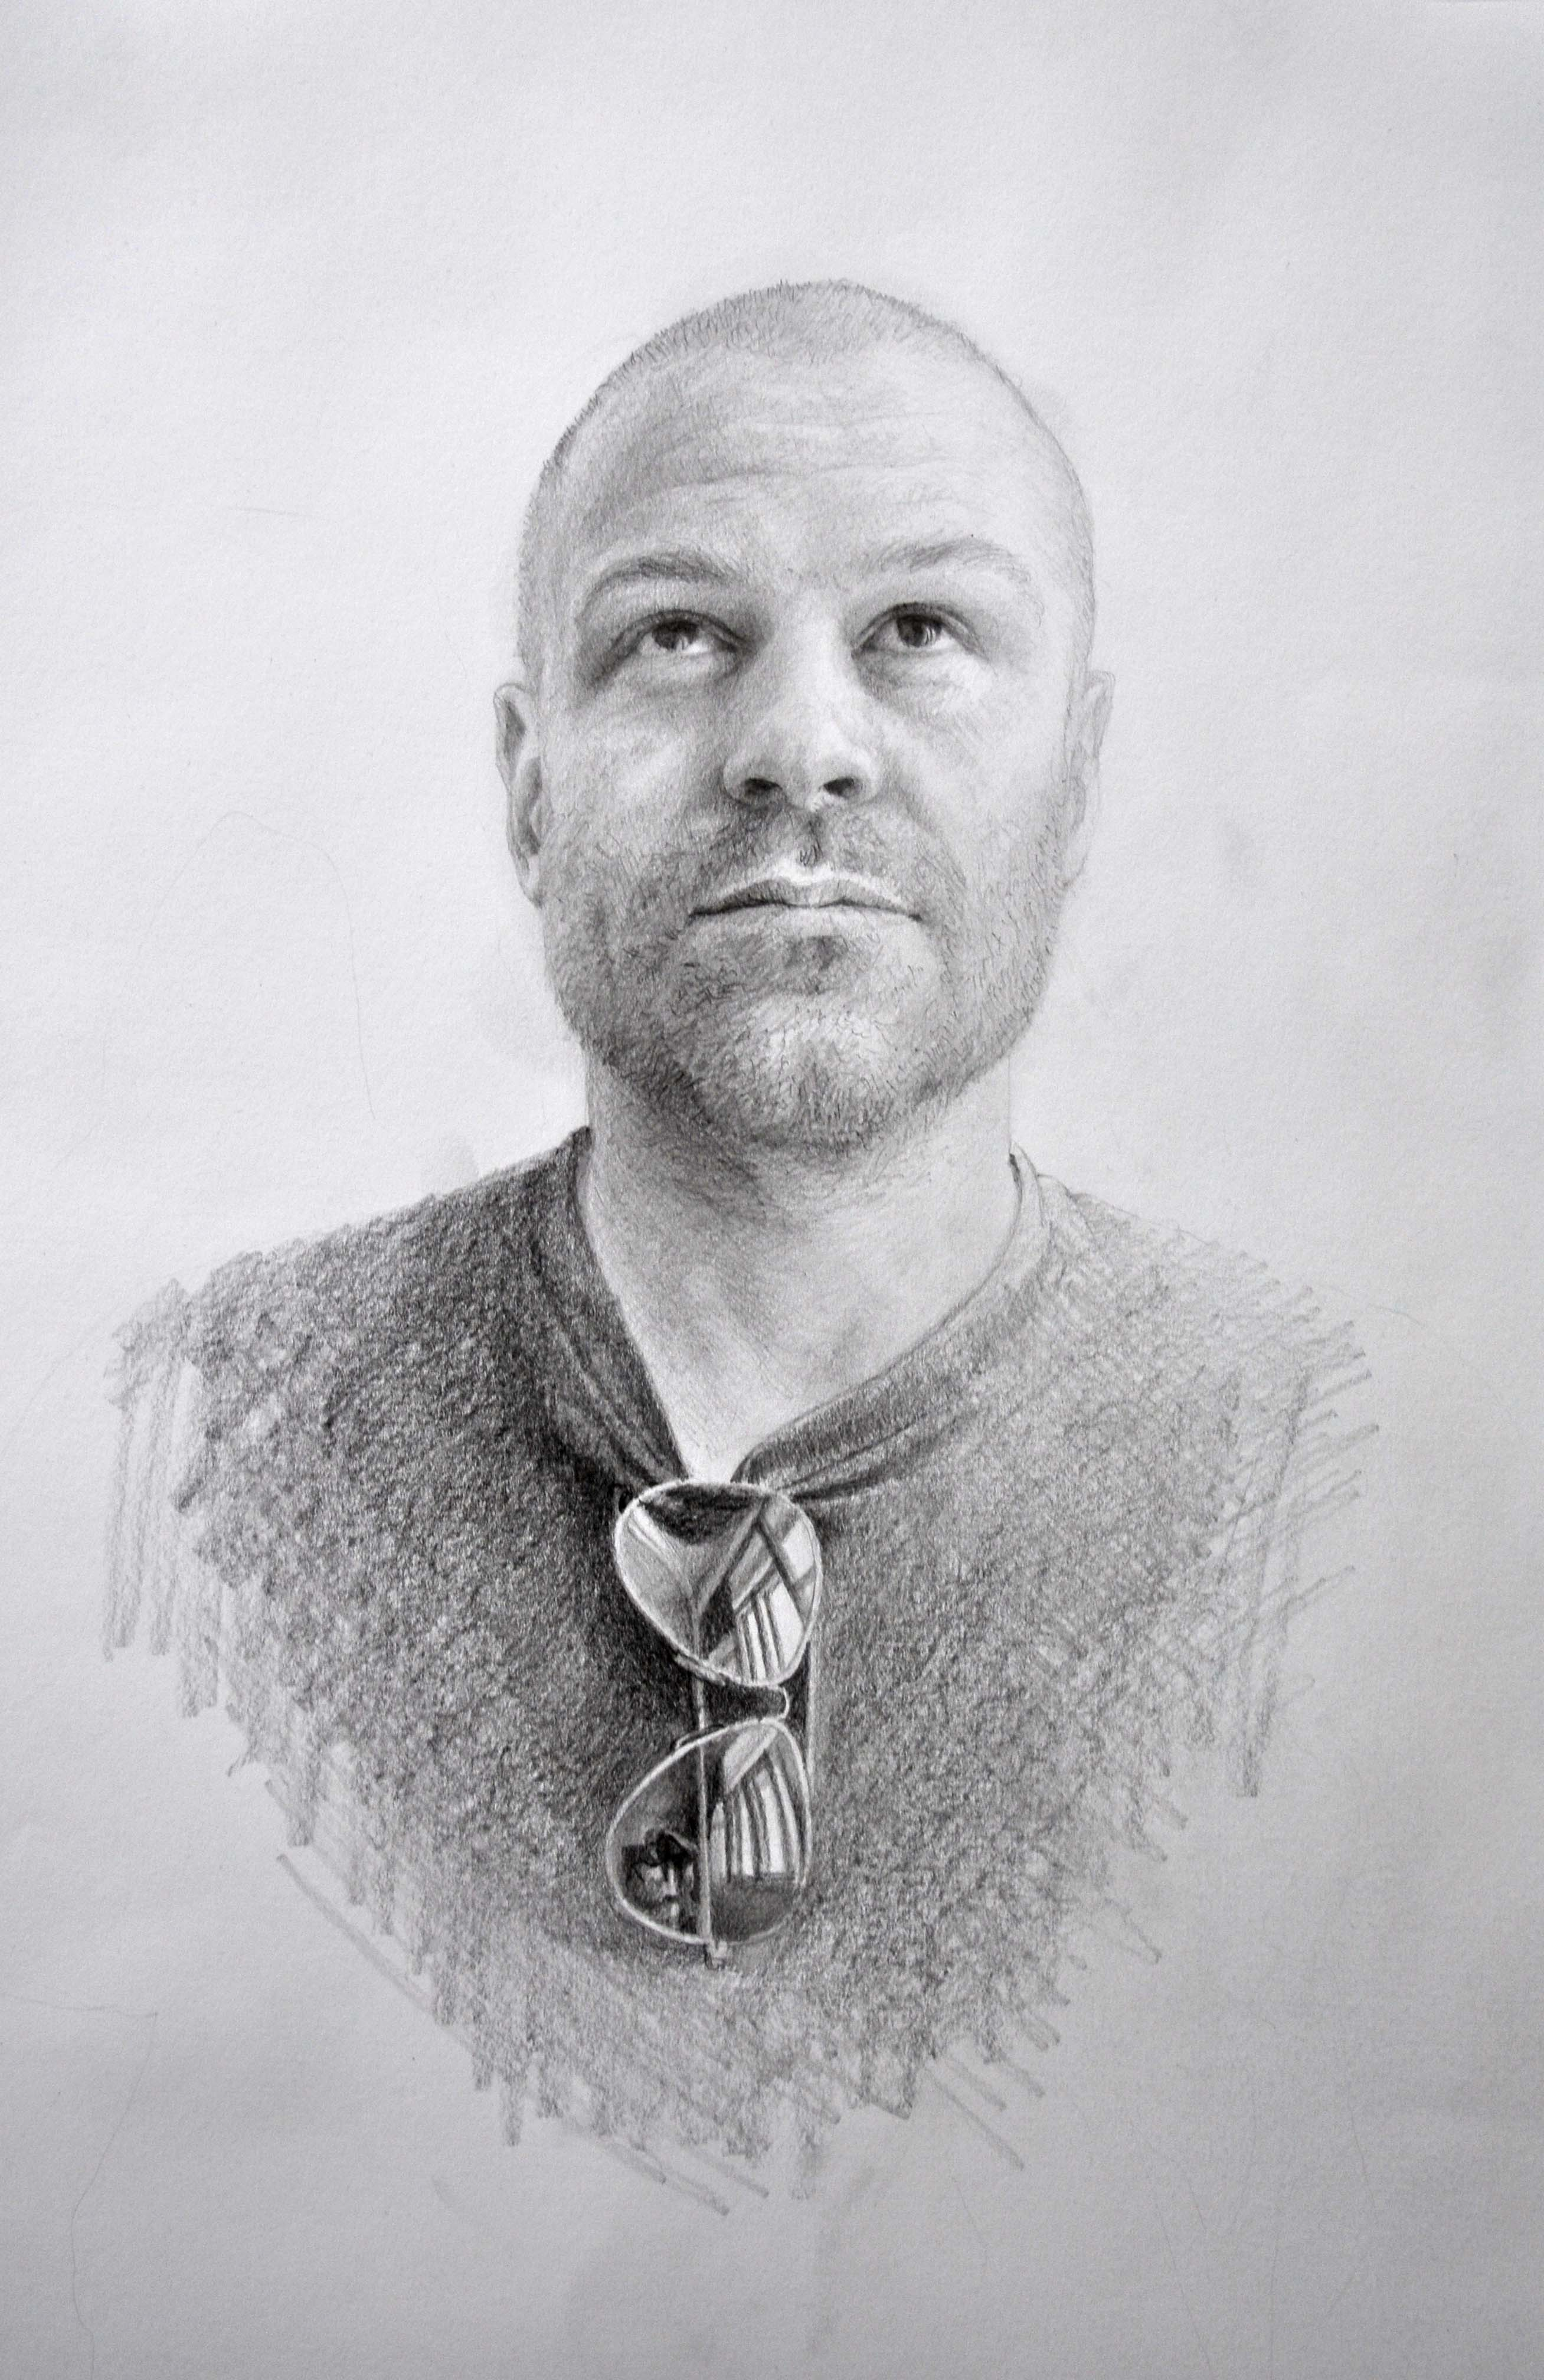 Michael Halak, Kiven, 2011, Pencil on Paper, 50x35cm